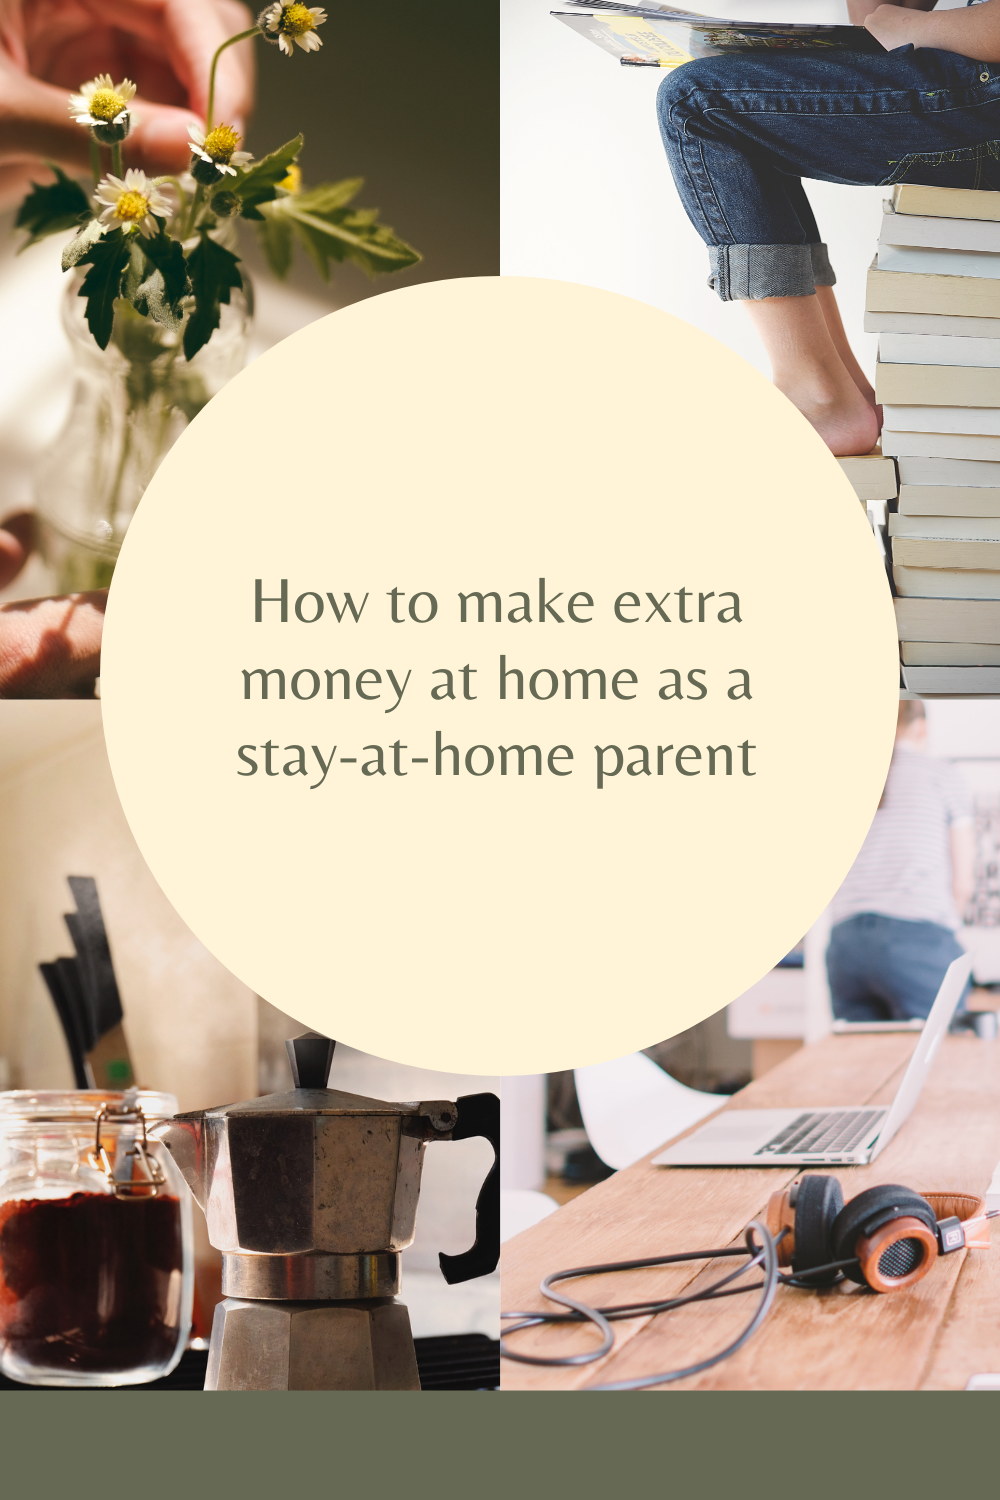 How to make extra money at home as a stay-at-home parent. I've put together some ways to make extra money from the comfort of your home.